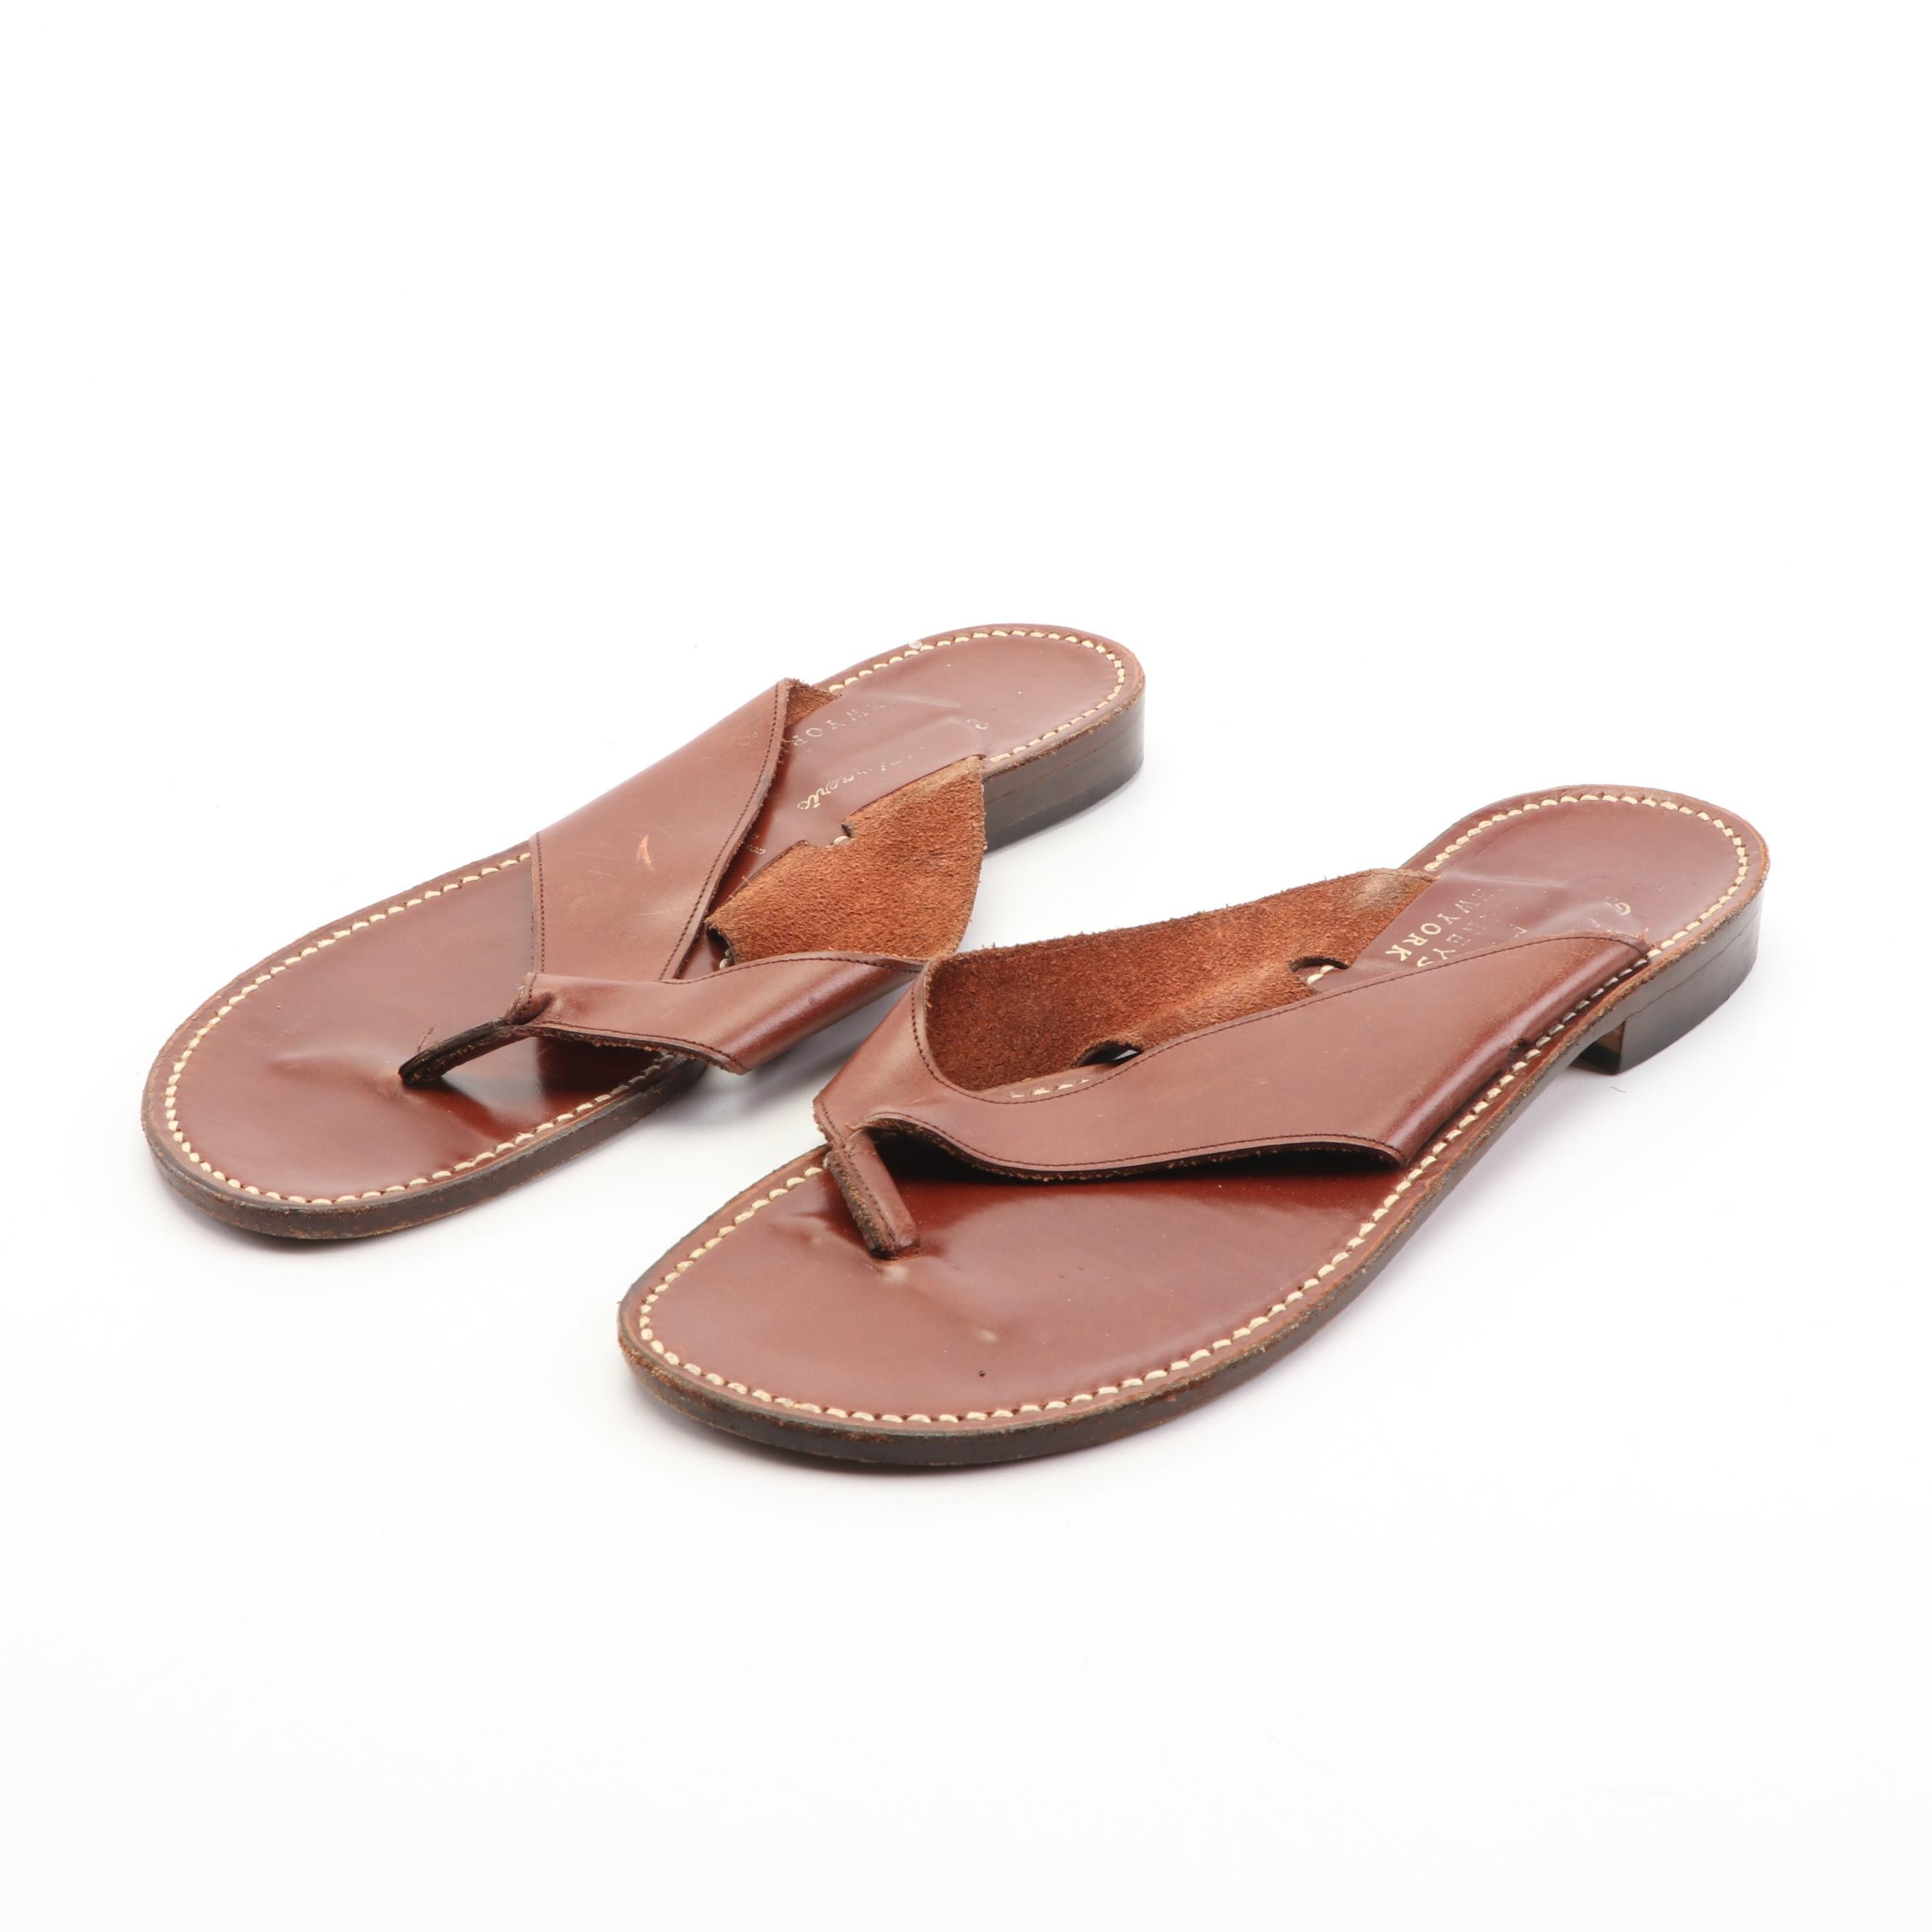 Robert Clergerie for Barneys New York Brown Leather Sandals